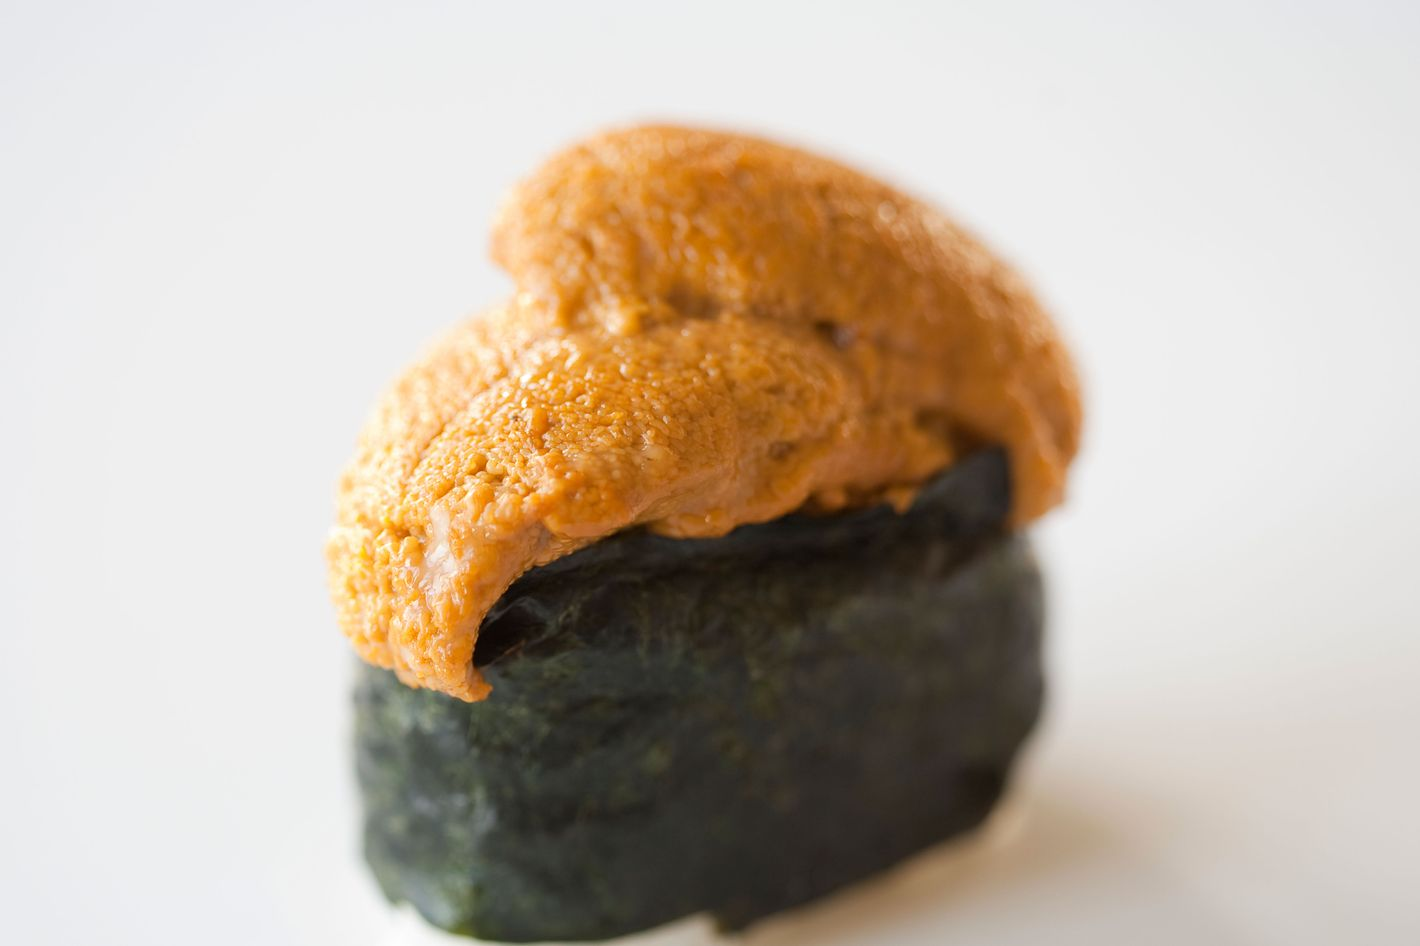 At Eataly, you can get a sea urchin crostino.